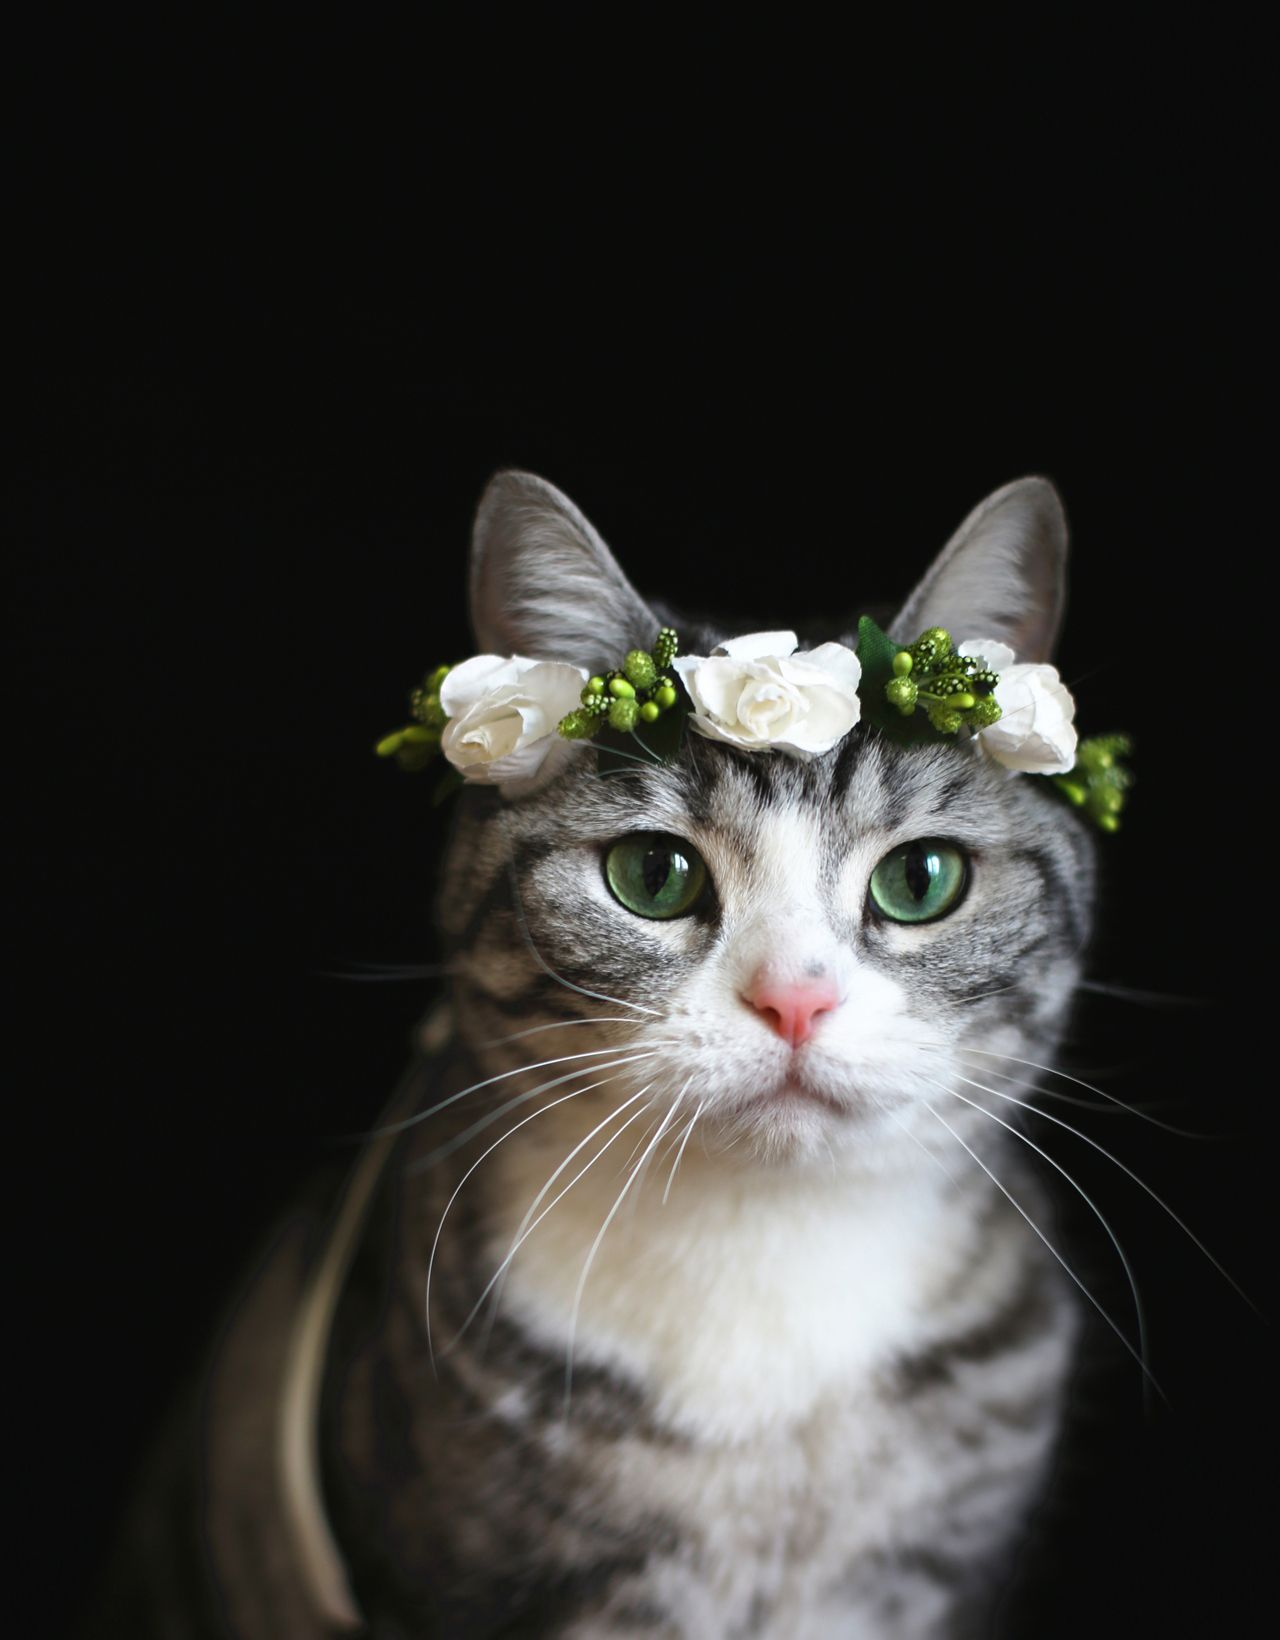 Looks Cuter In Flower Crown Cute Cats And Kittens In 2018